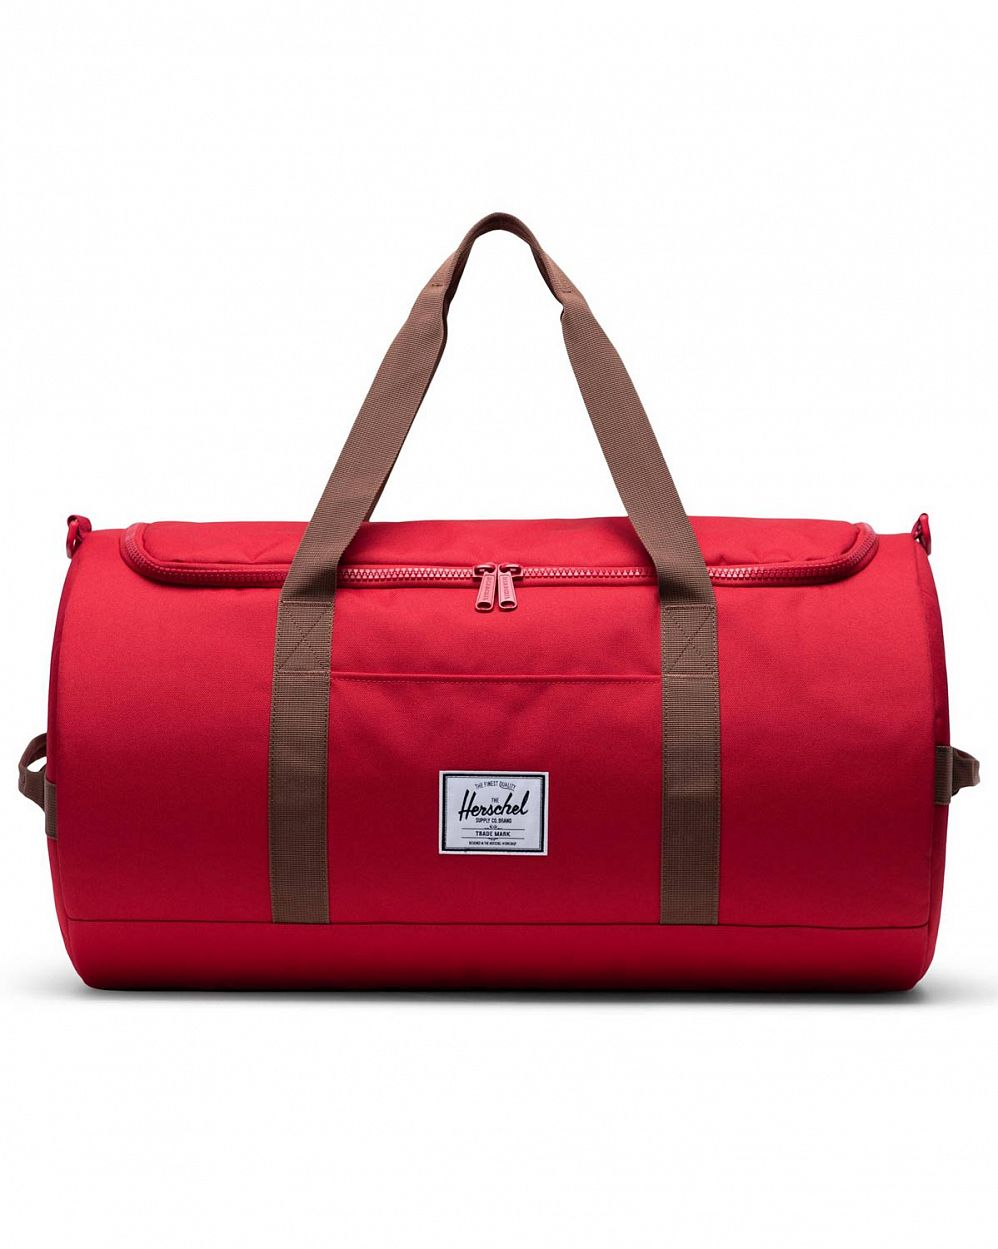 Сумка спортивная Herschel Sutton New Red Saddle Brown отзывы